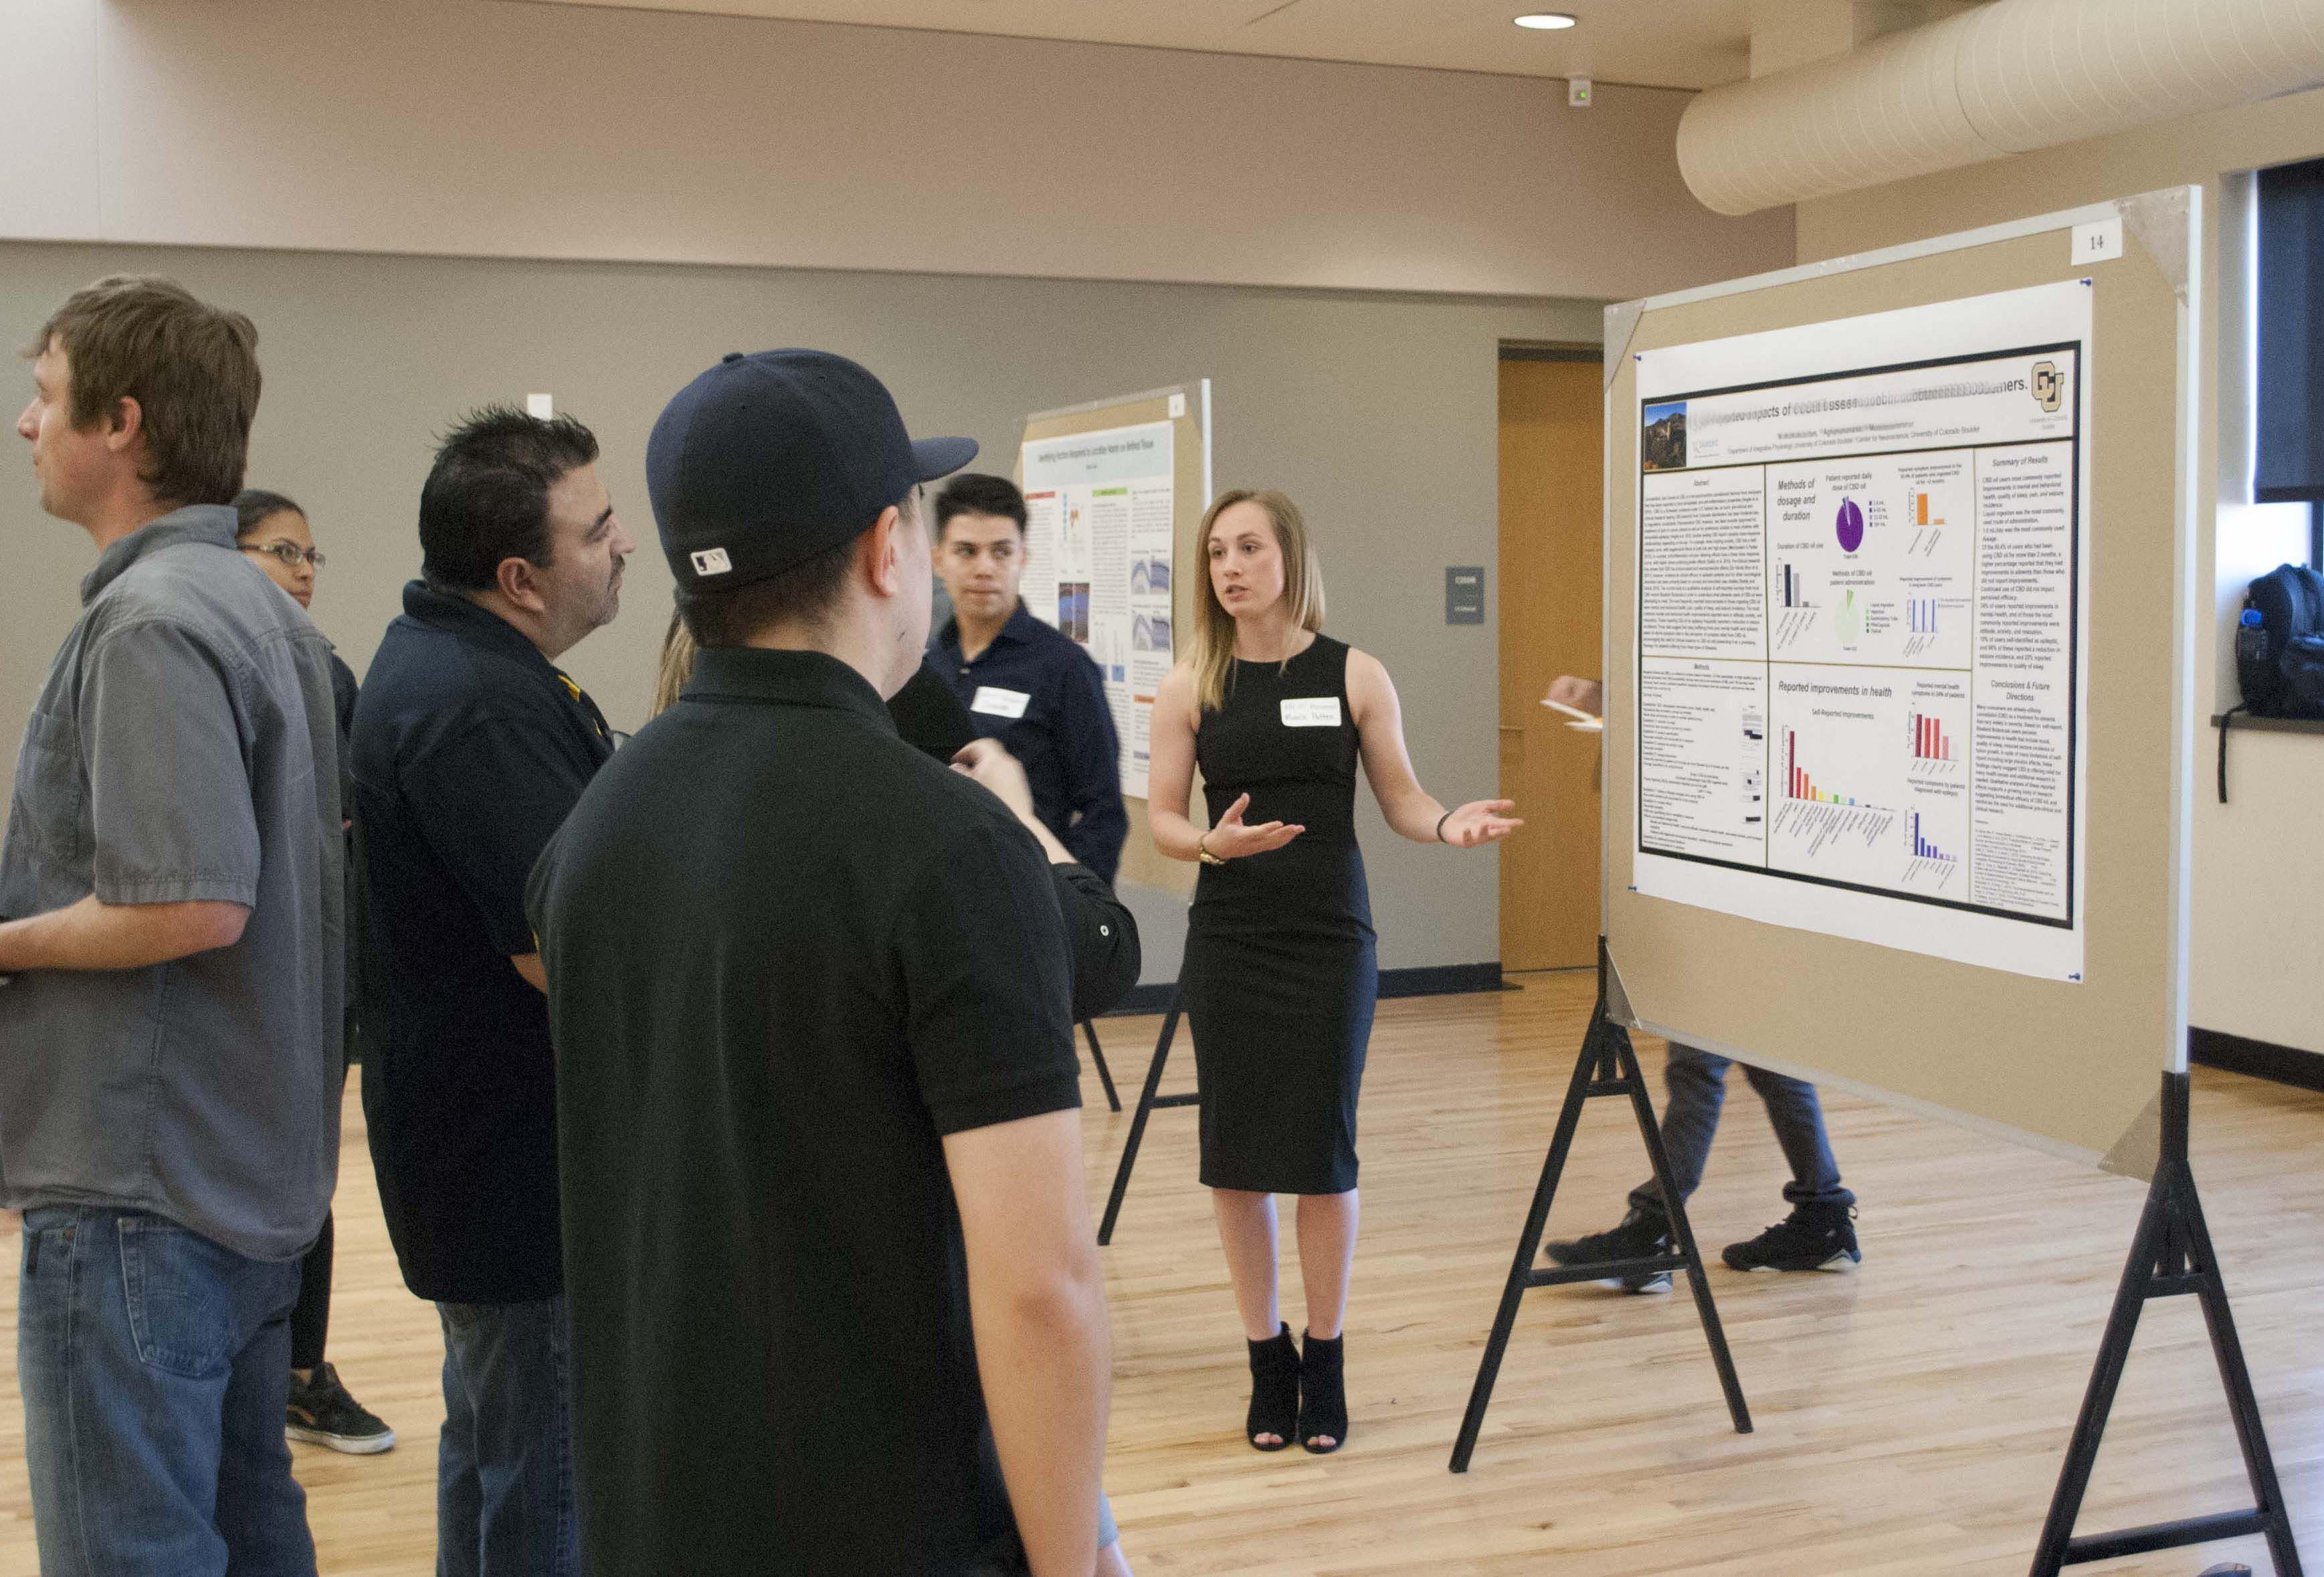 Attendees at BSI Scholars Poster Symposium